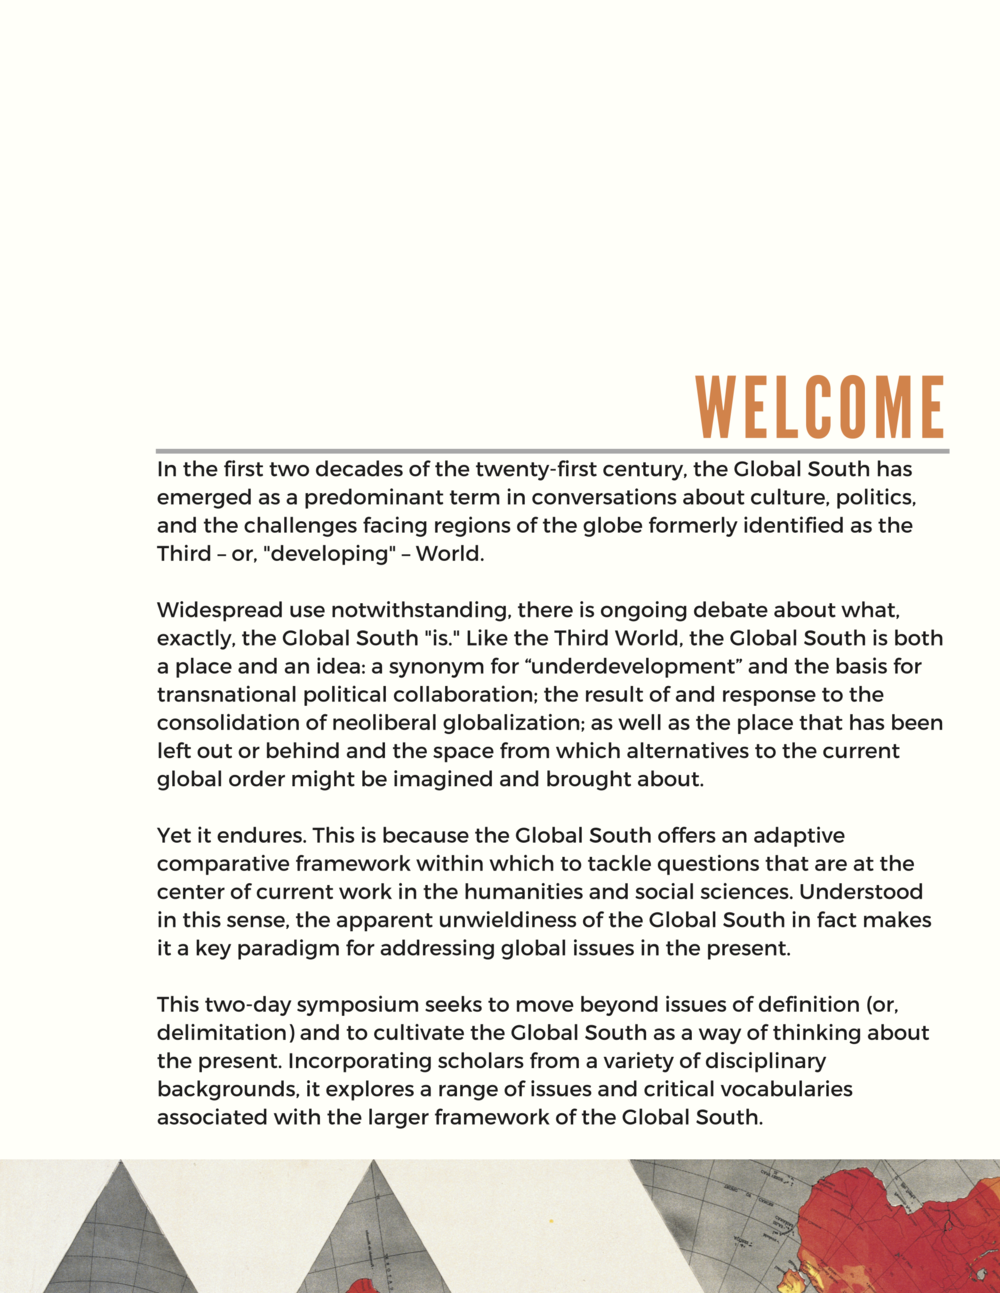 Thinking the Global South - Conference Program-2 (dragged) copy.png